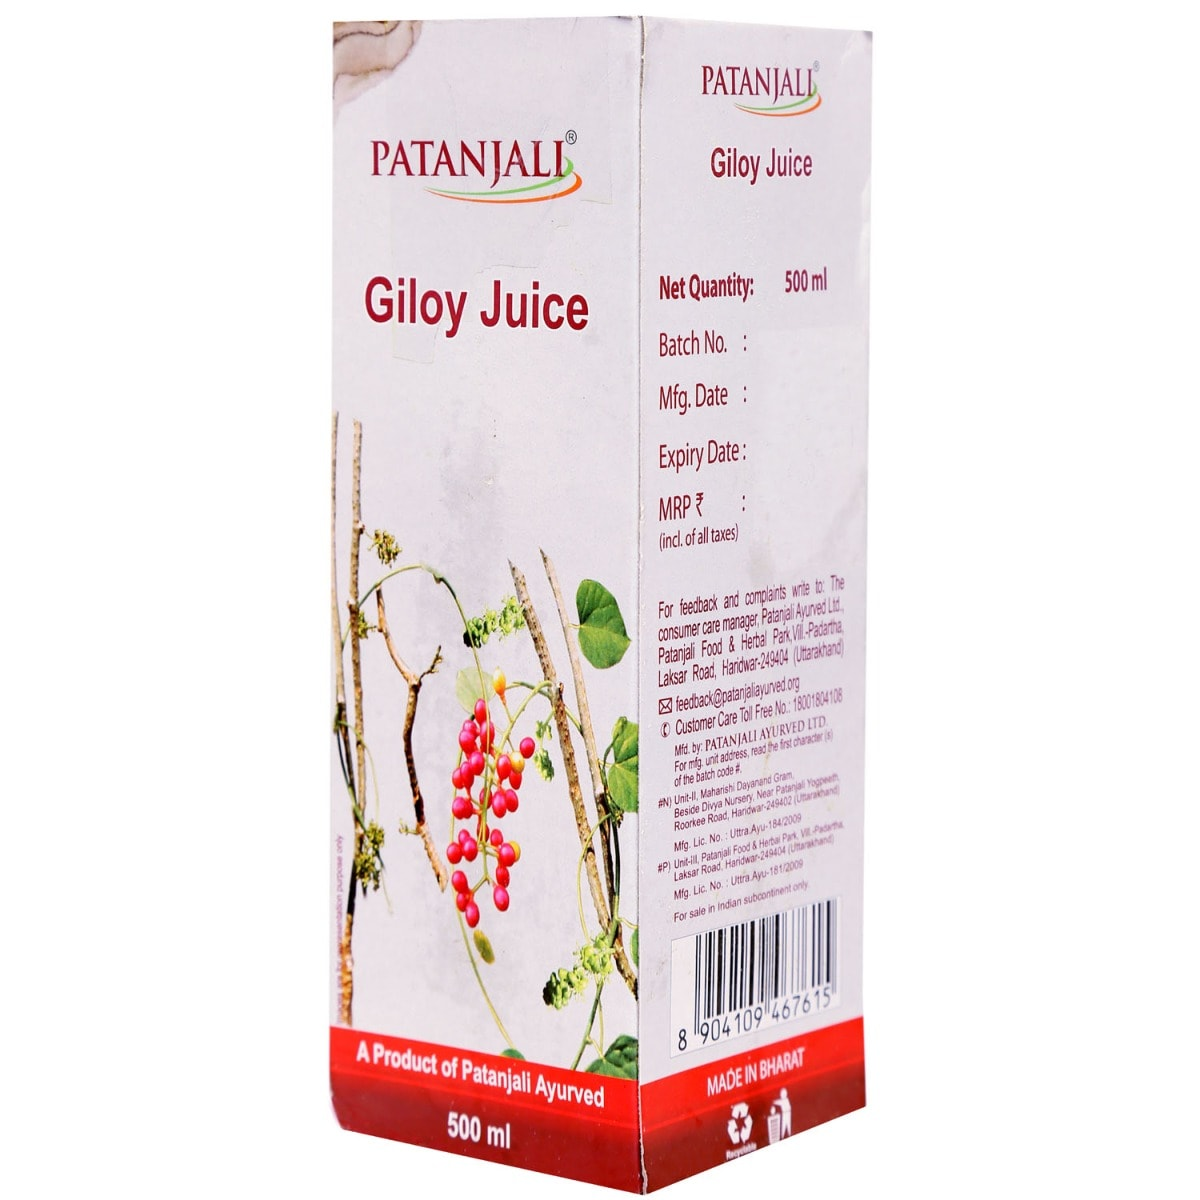 Patanjali Giloy Juice, 500 ml, Pack of 1